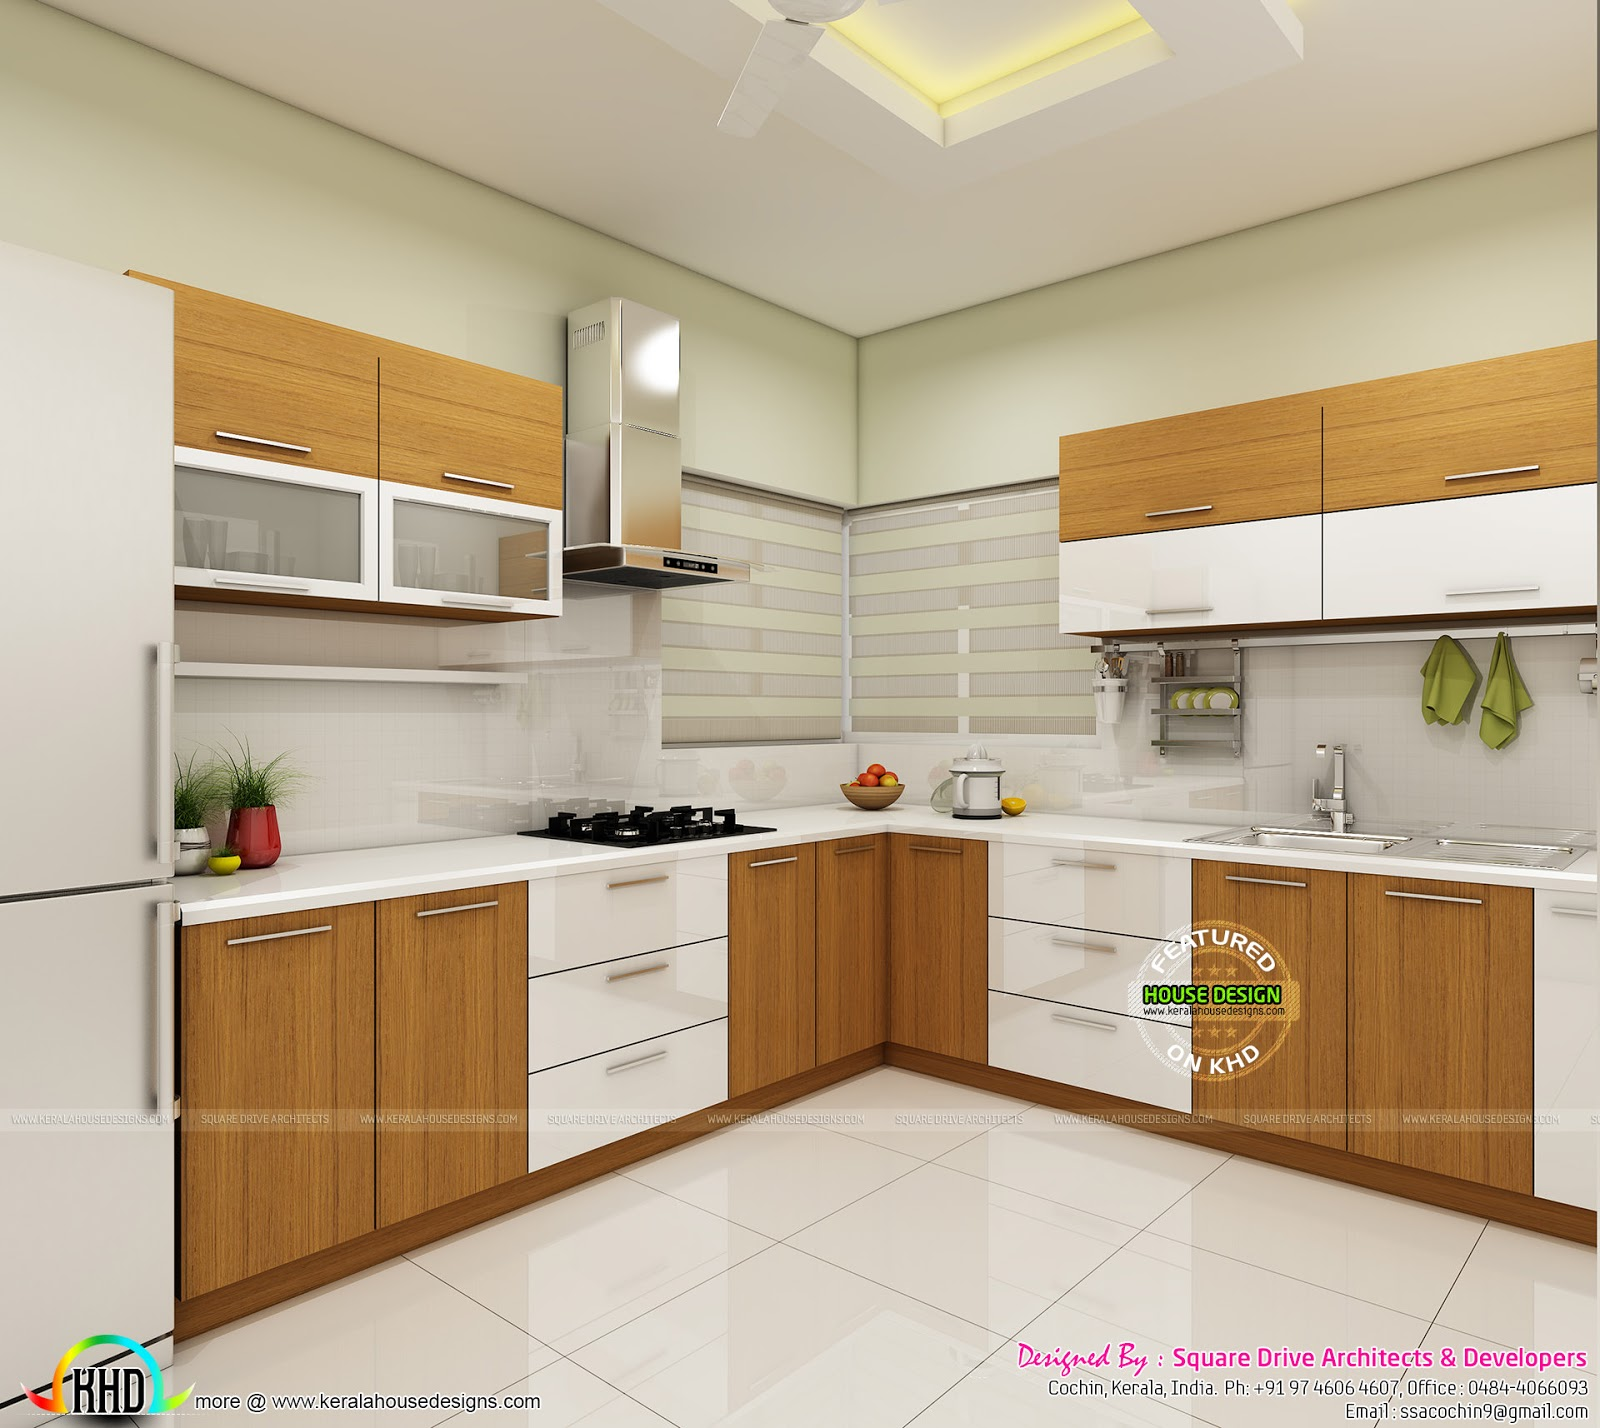 Modern home interiors of bedroom dining kitchen kerala for New kitchen designs in kerala